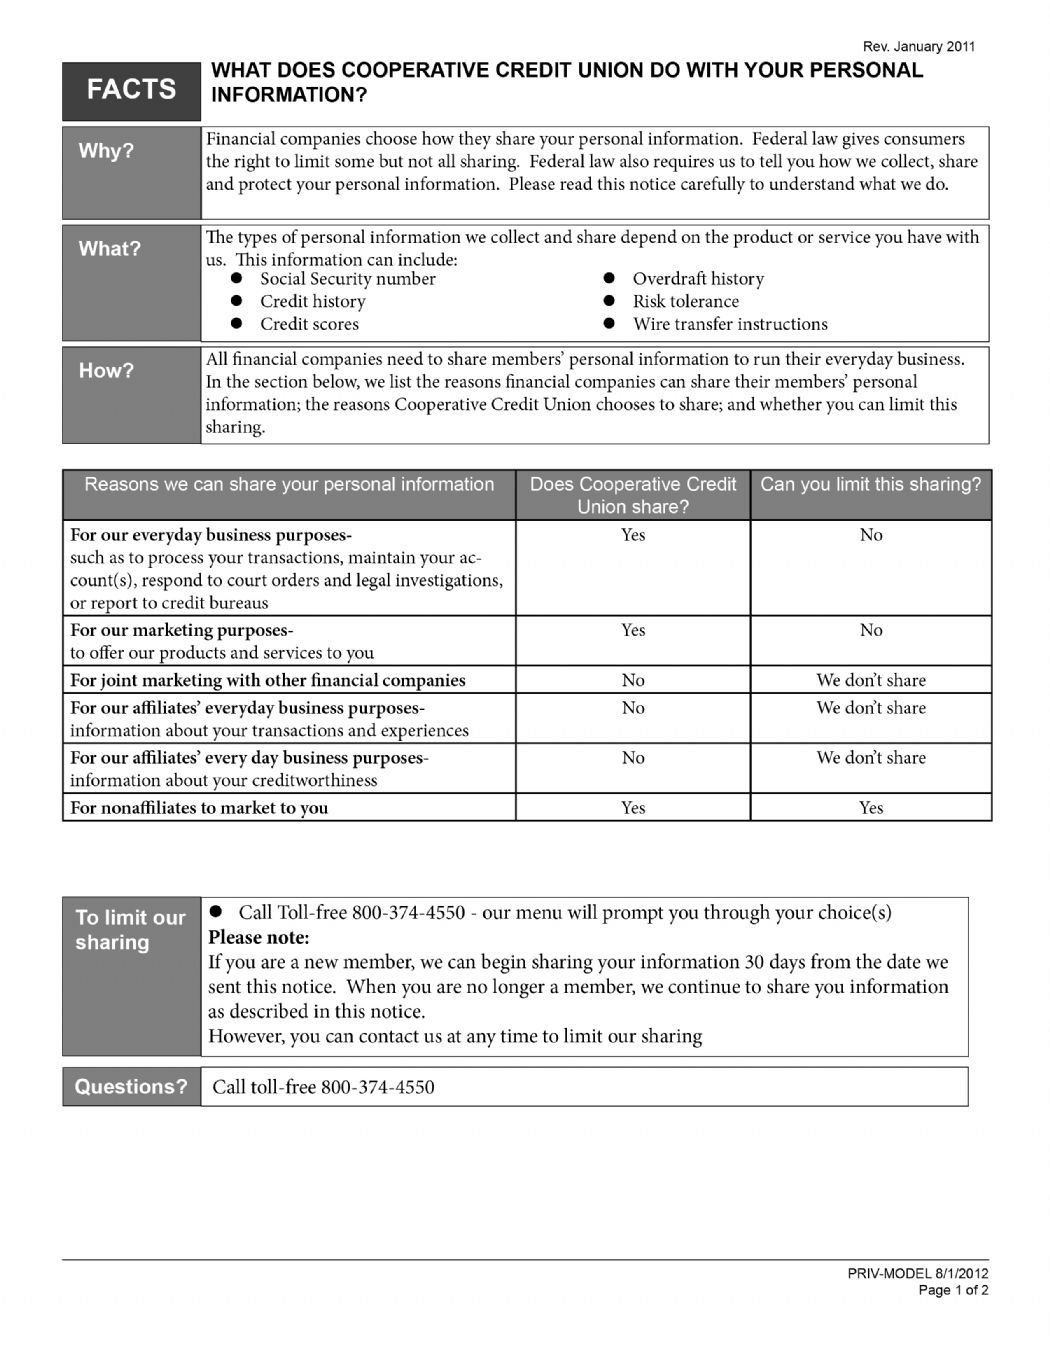 Cooperative Credit Union Privacy Page 1